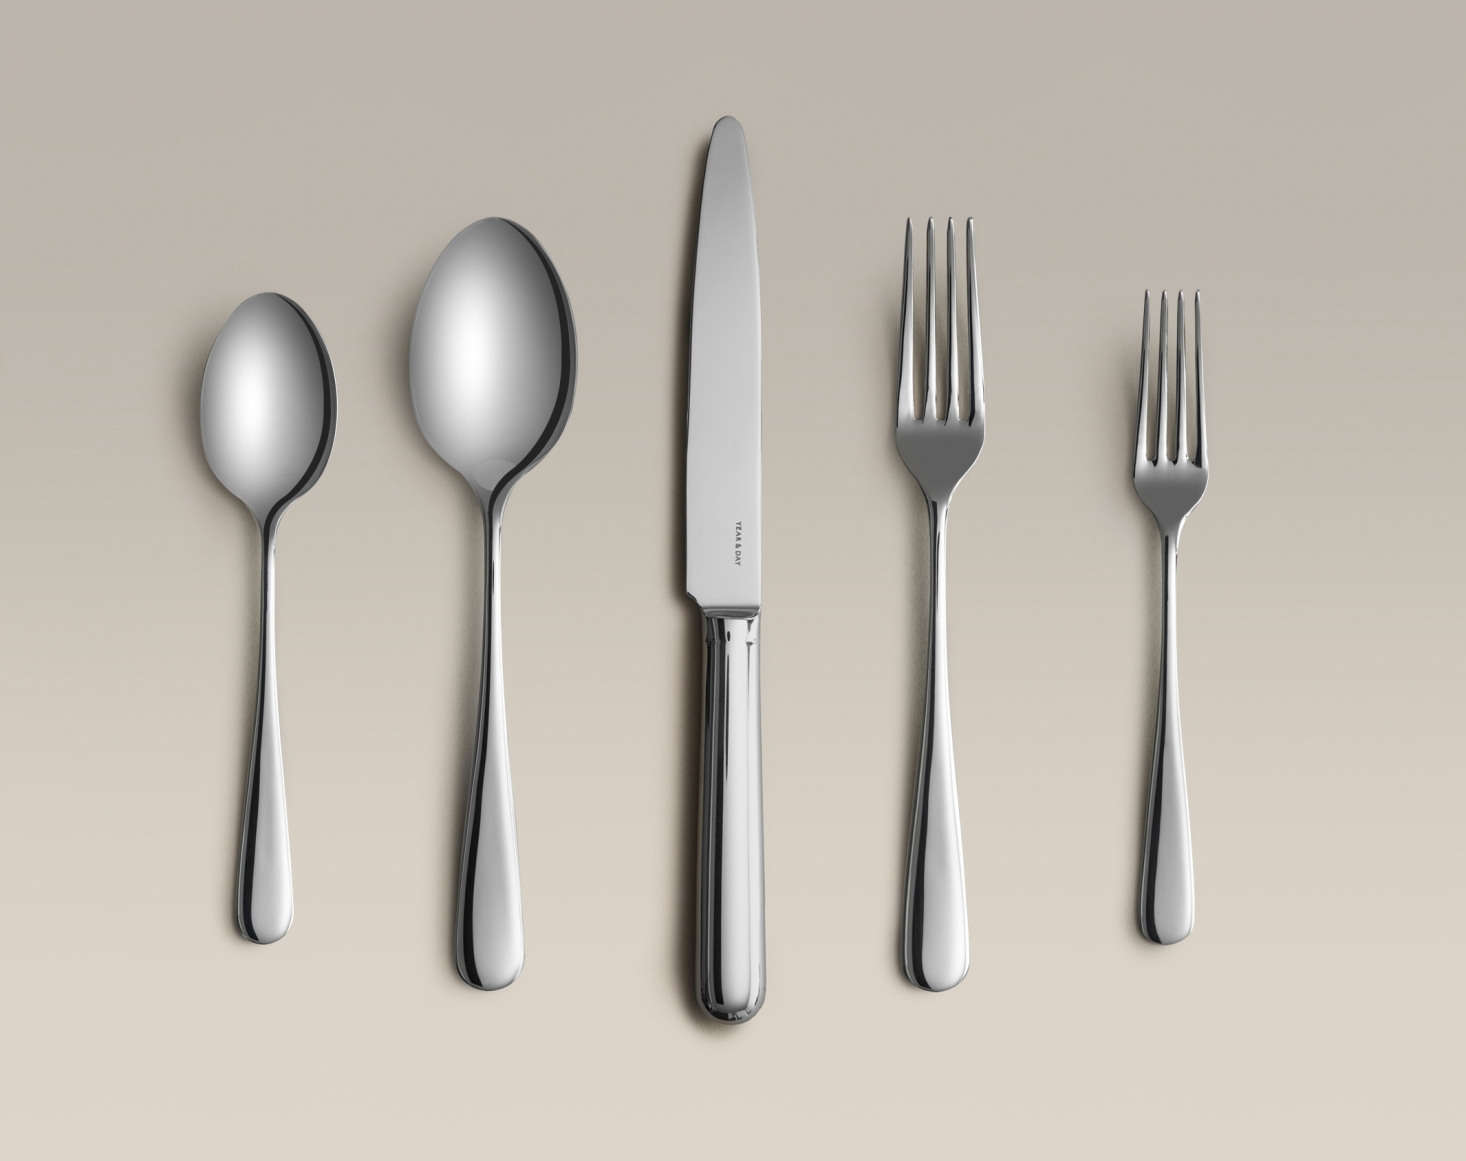 Year & Day offers a set of four five-pieceFlatware Settings in polished stainless steel (shown), matte black, and matte gold. The flatware is made in a family-owned factory in Portugal and finished by hand; $0 for a -piece stainless flatware set. Also on offer: a matching Serving Fork & Spoon ($45 for stainless steel).